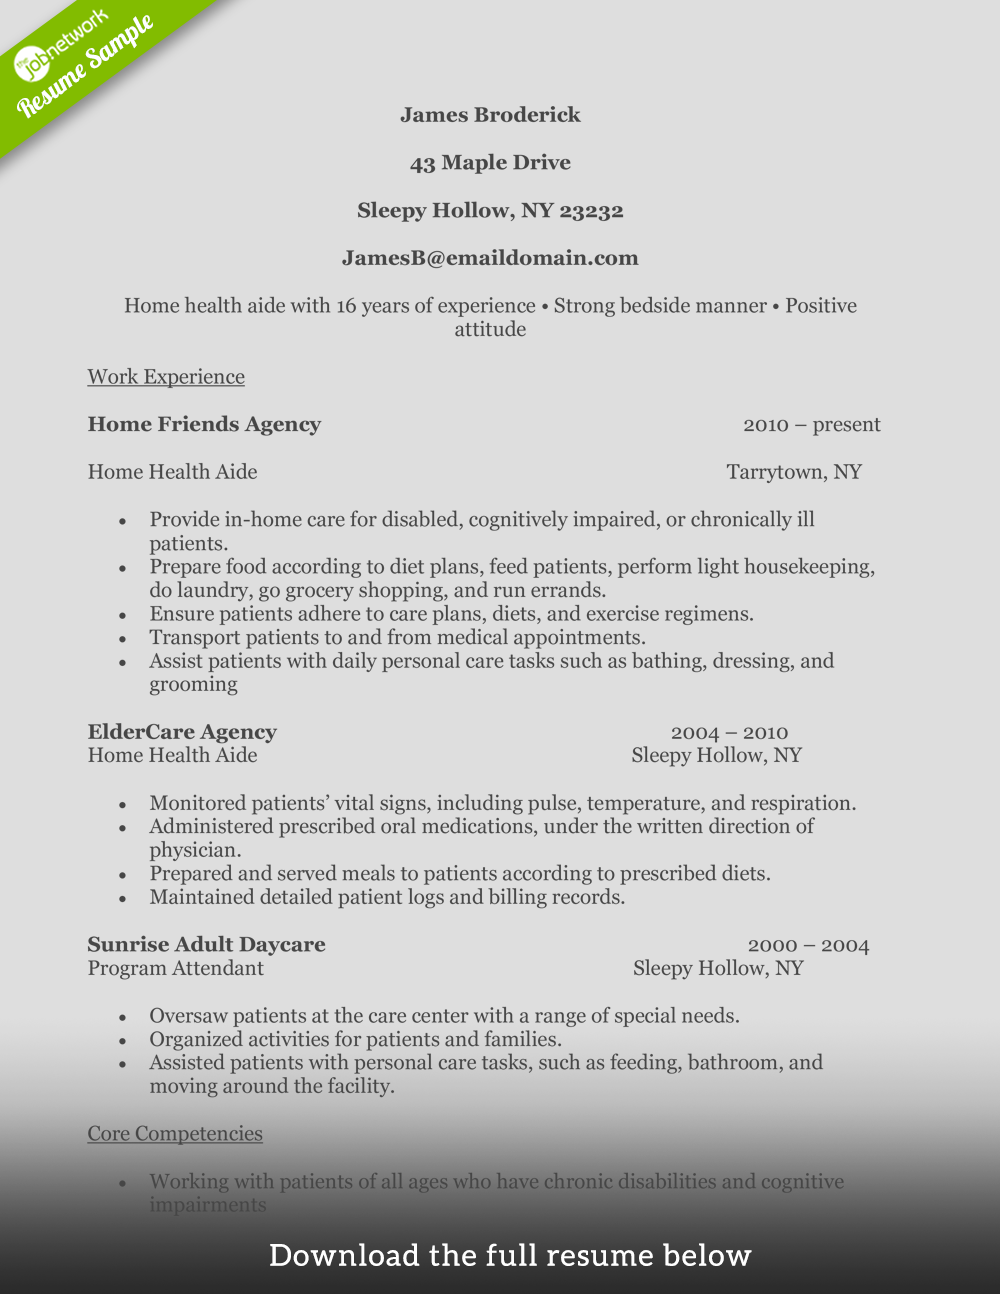 How to Write a Perfect Home Health Aide Resume Examples Included – Home Health Aide Resume